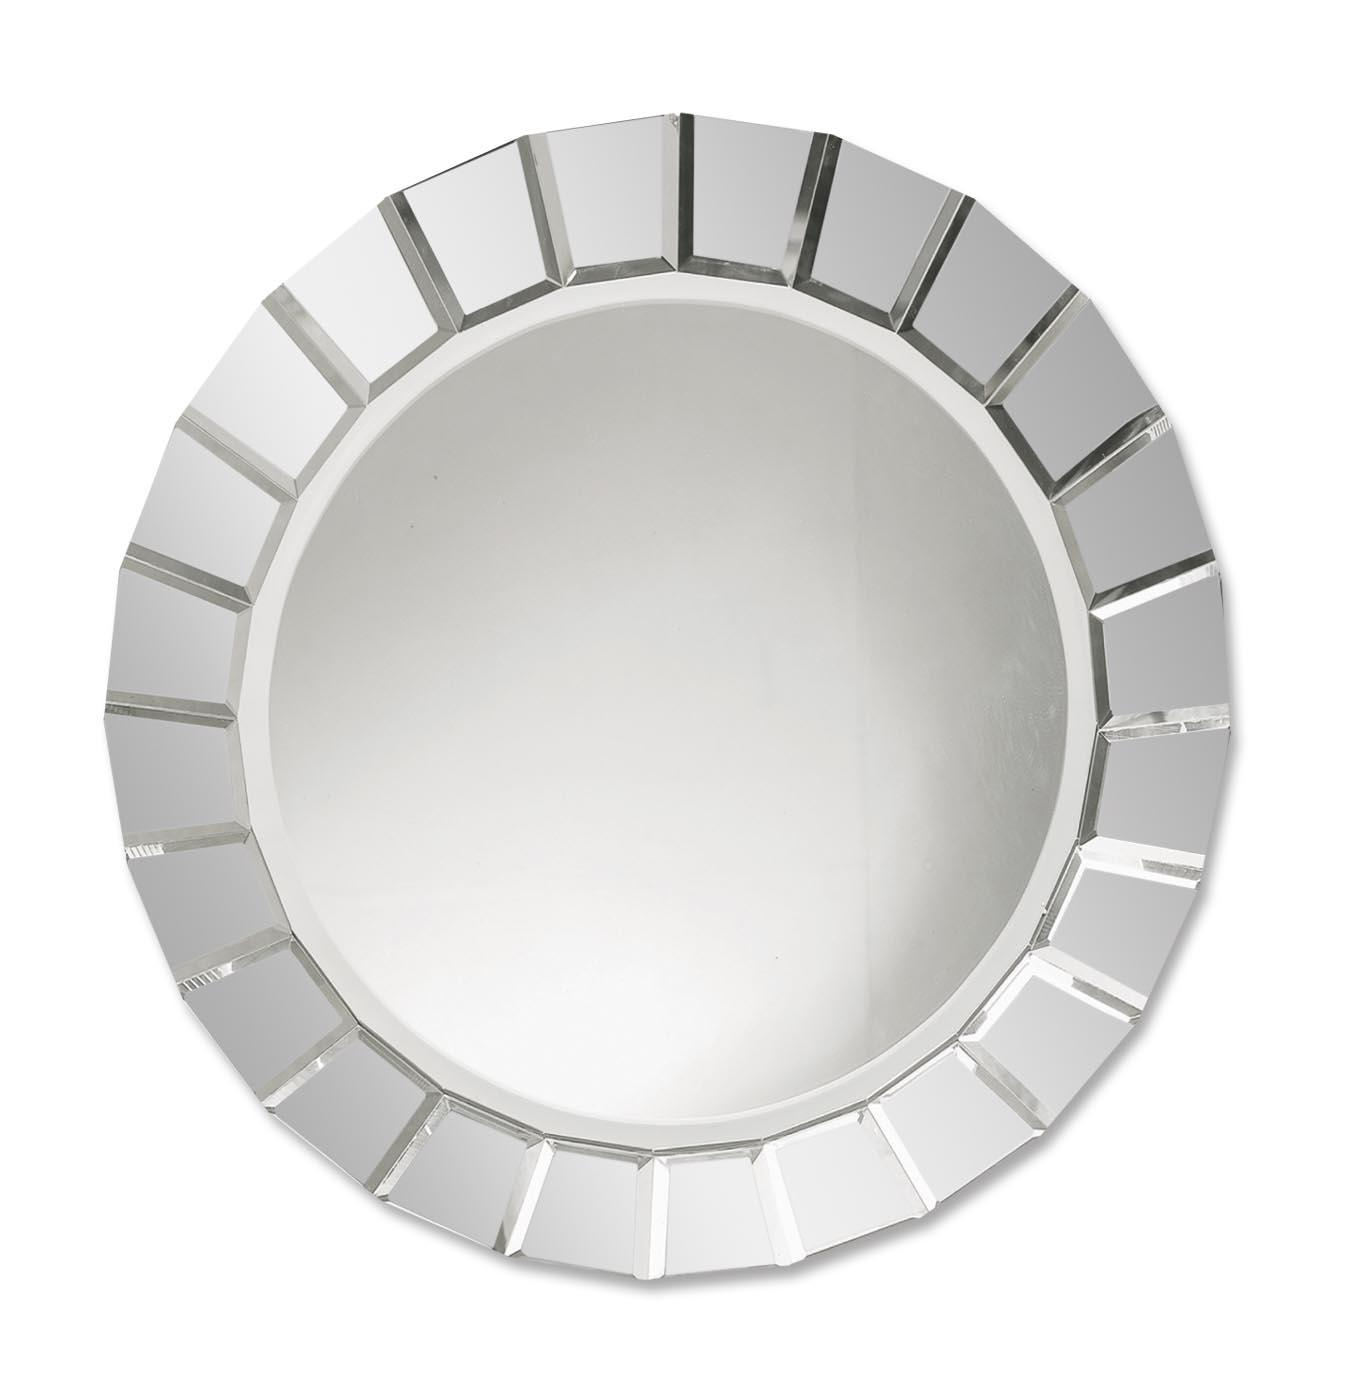 Uttermost Mirrors Fortune - Item Number: 11900 B